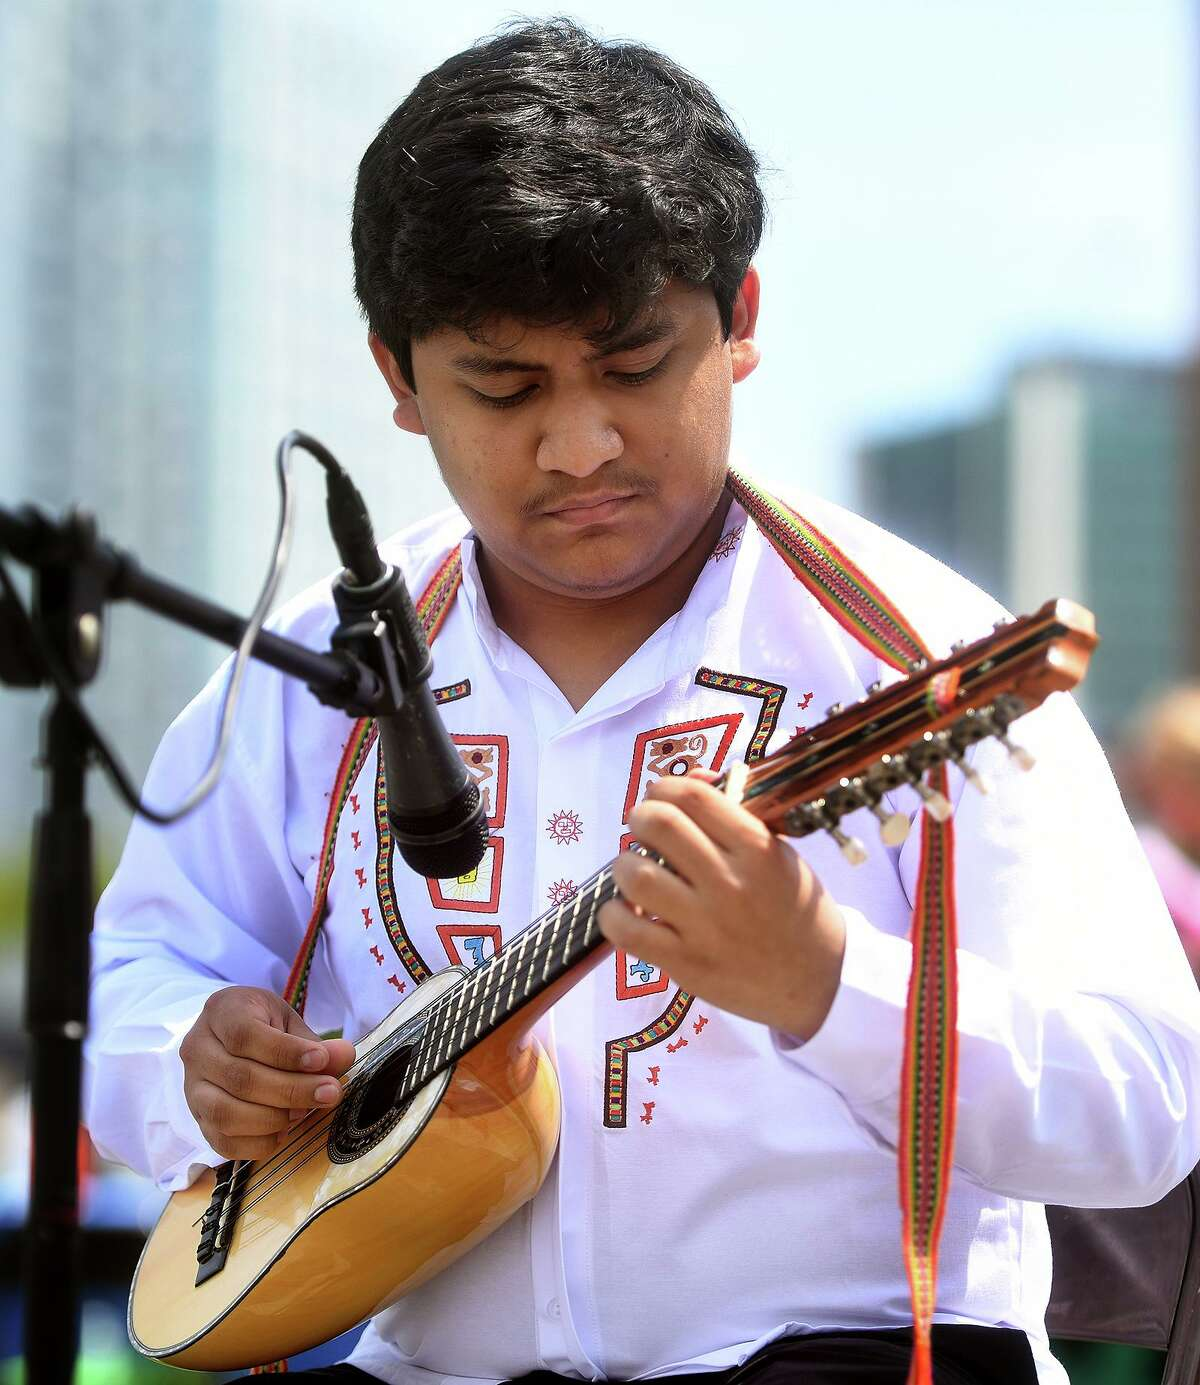 Stamford High senior Anthony De Paz performs traditional South American songs on the charrango as one of the many multicultural performances at Stamford Day at Mill River Park in Stamford, Conn. on Sunday, May 16, 2021.